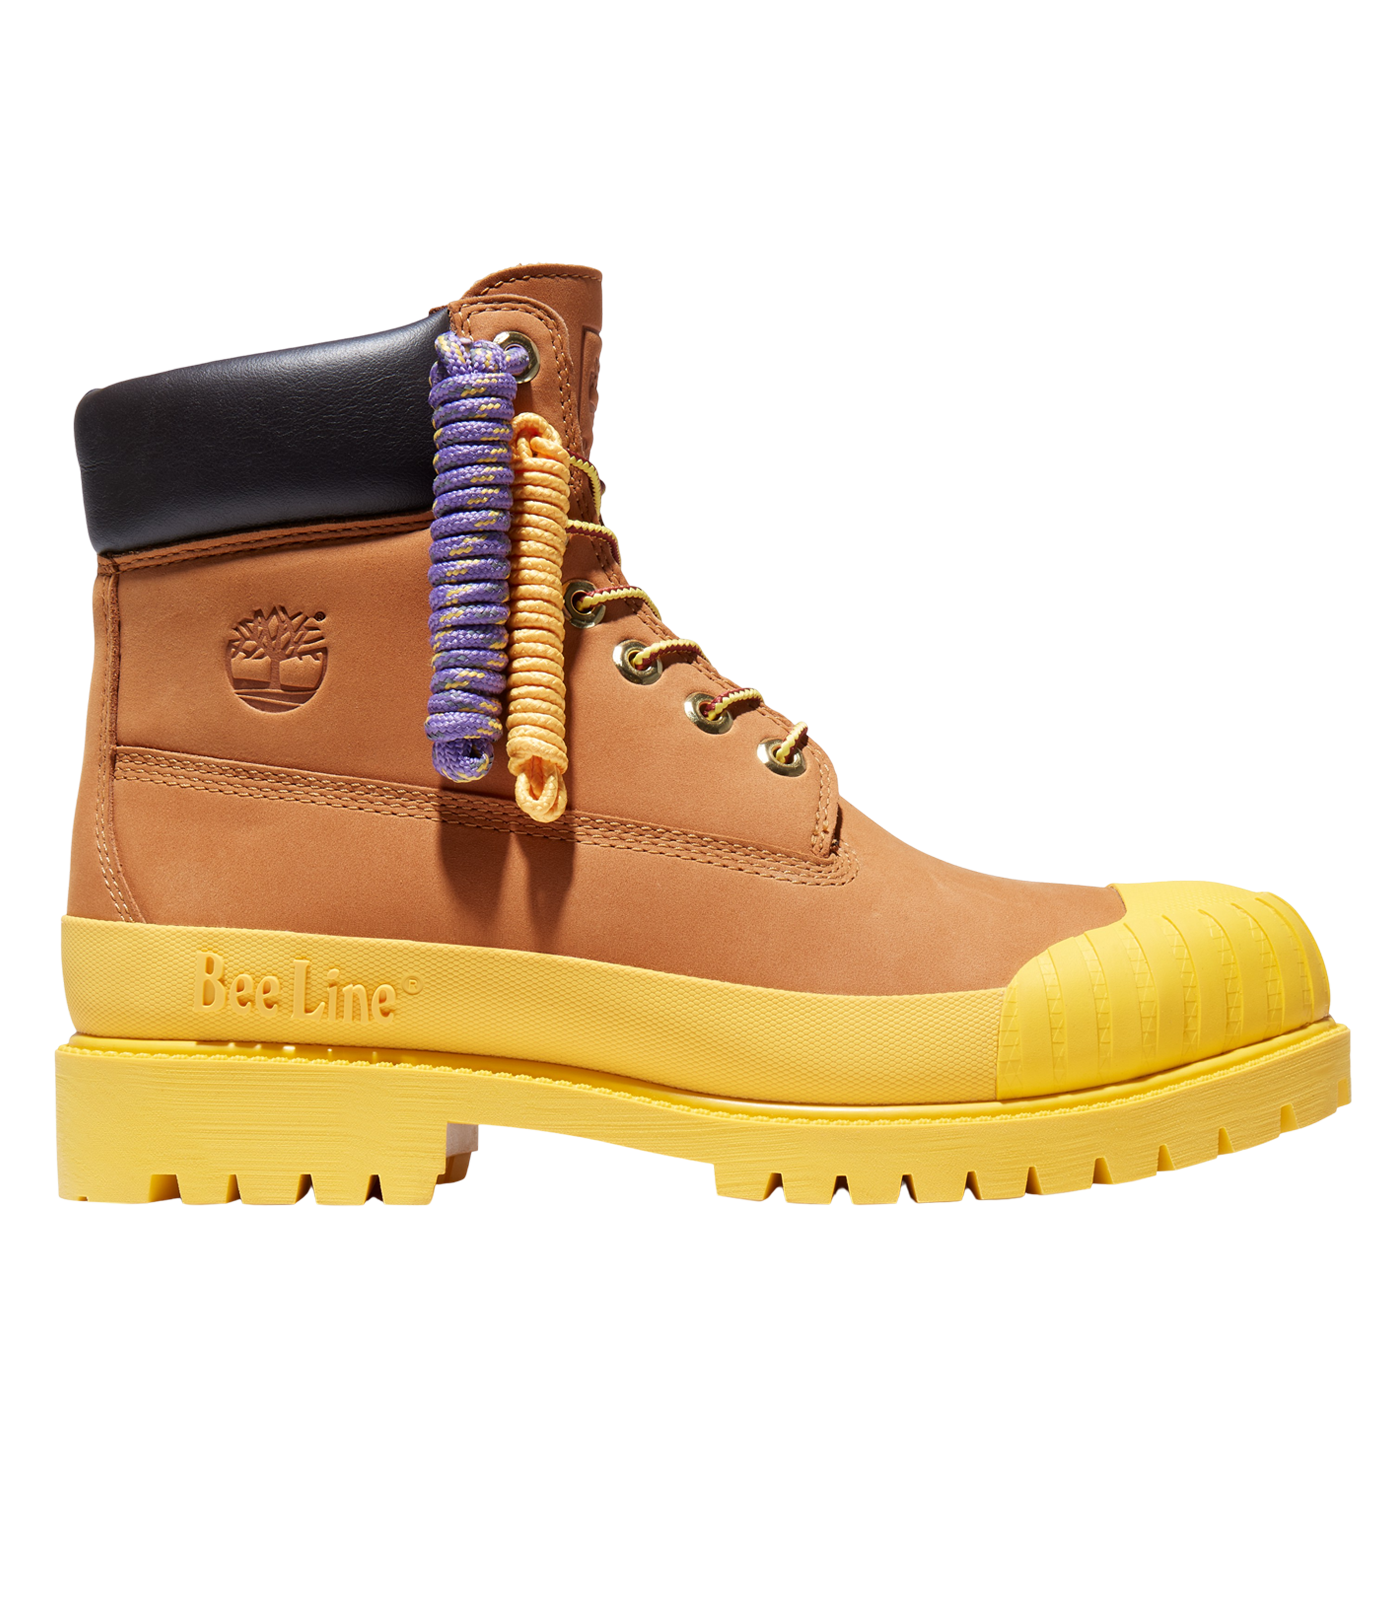 BEE LINE & TIMBERLAND 6-INCH RUBBER TOE BOOT - YELLOW